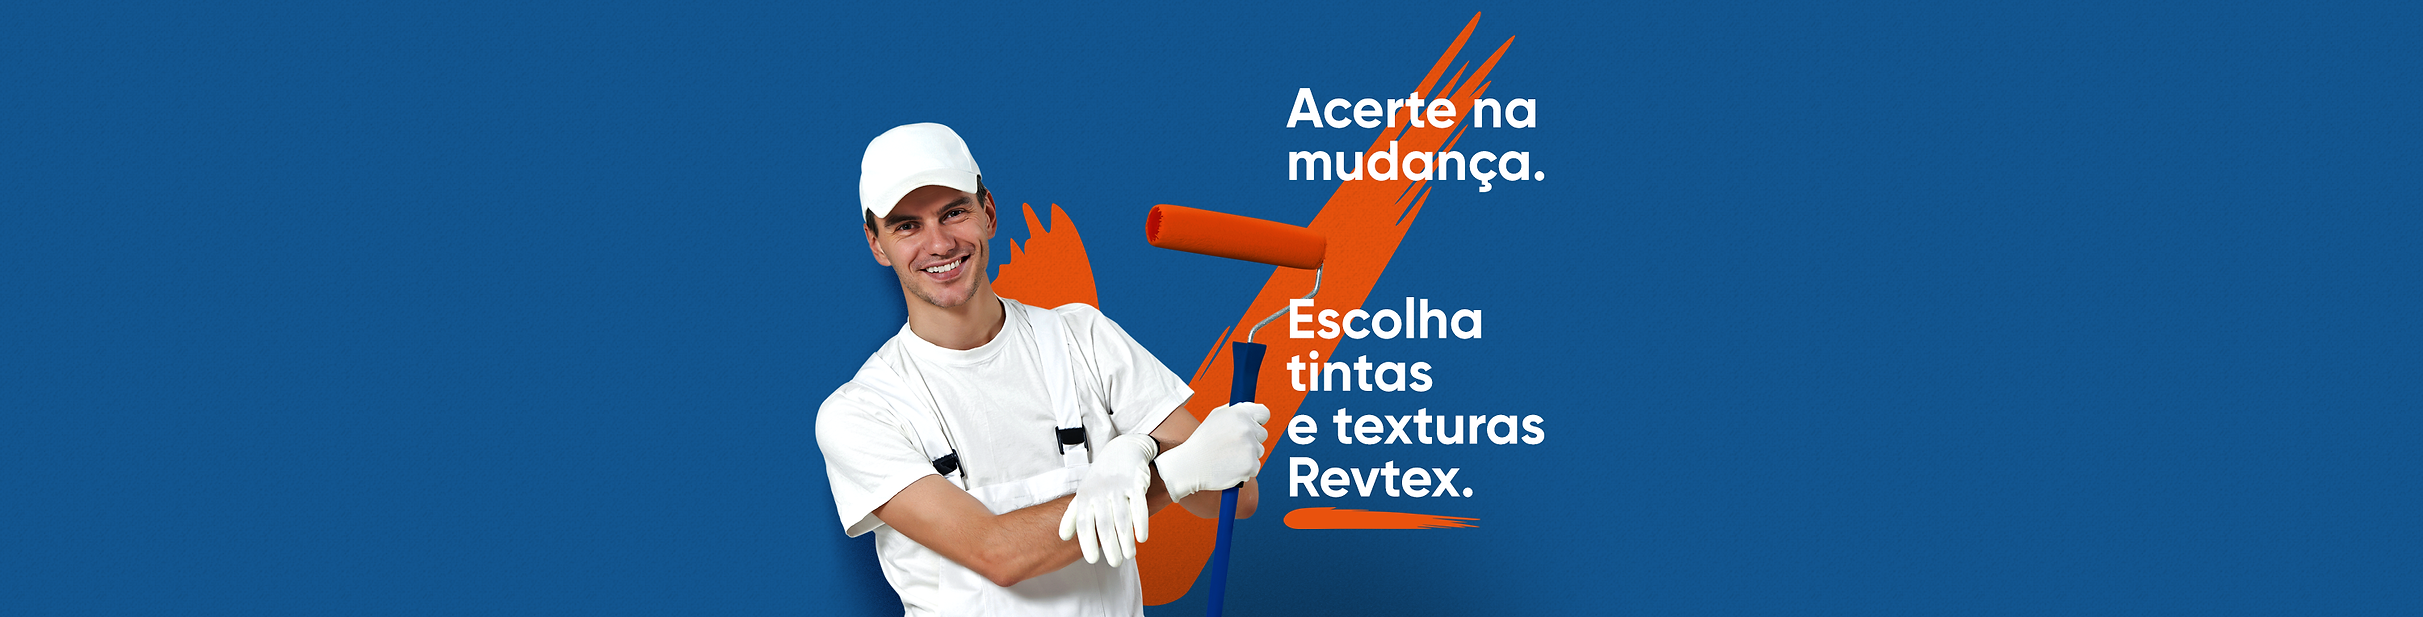 banner-1-home-3000x711-revtex.png